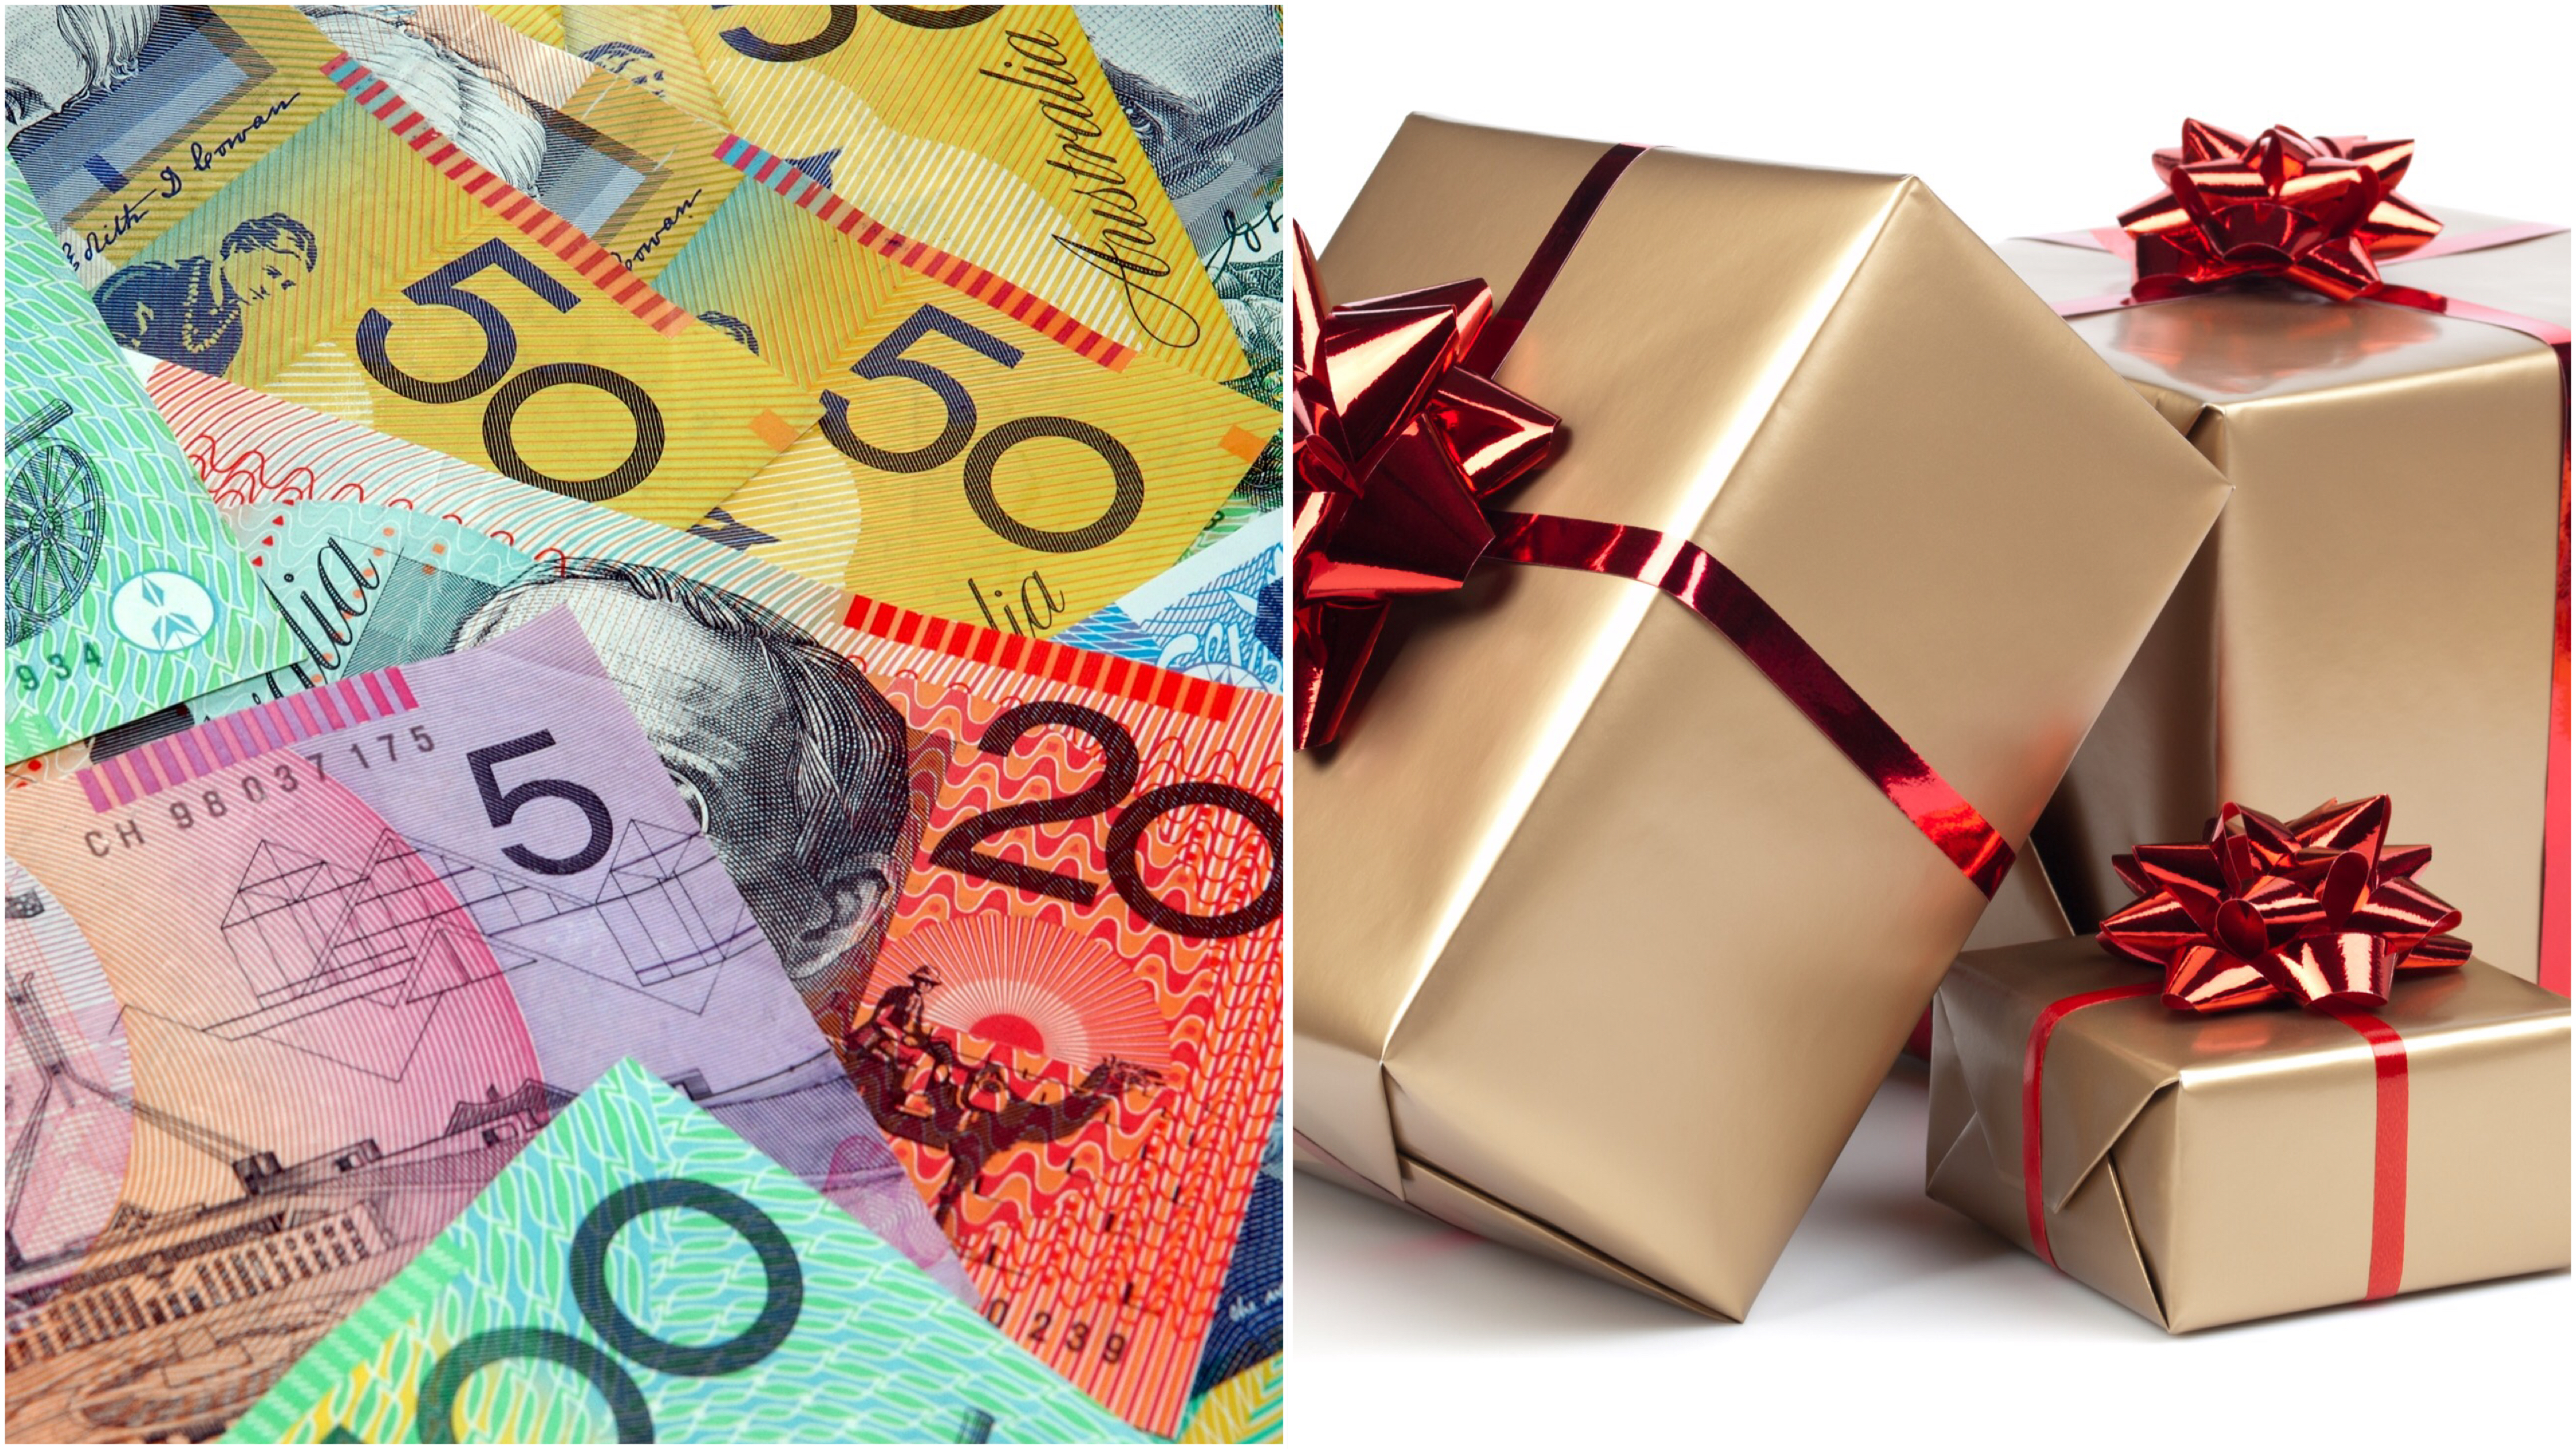 Australians are forecast to spend a record $50 billion this holiday season.